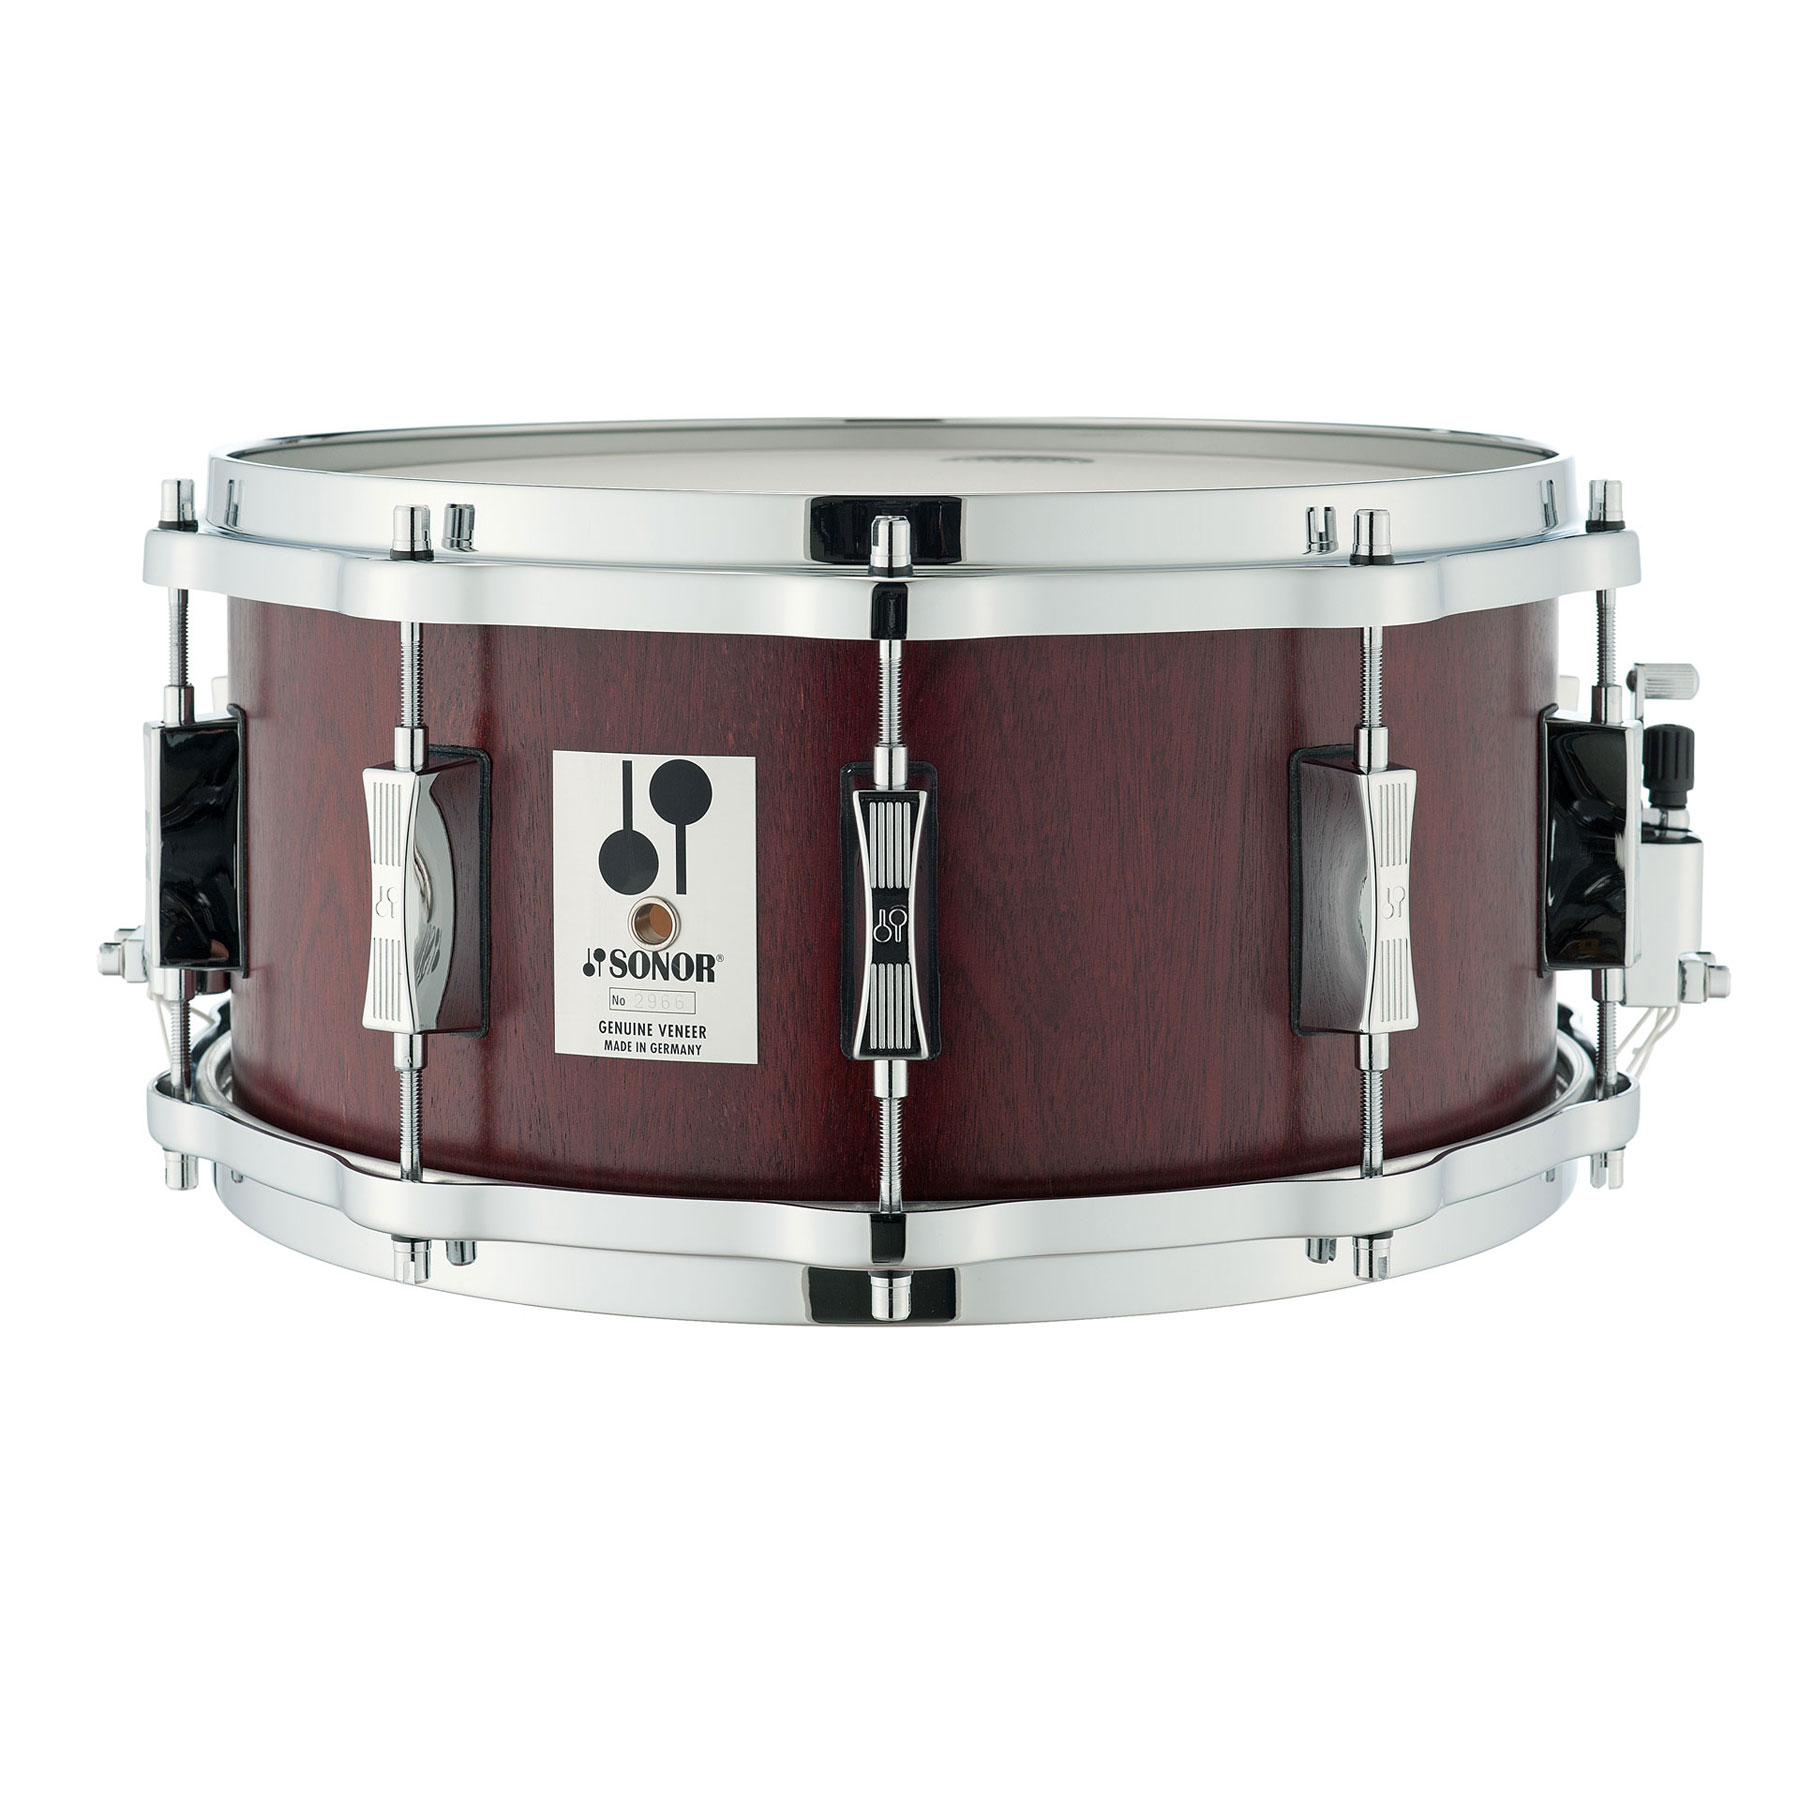 "Sonor 14"" x 6.5"" Phonic Re-Issue Beech Snare Drum with Mahogany Veneer"